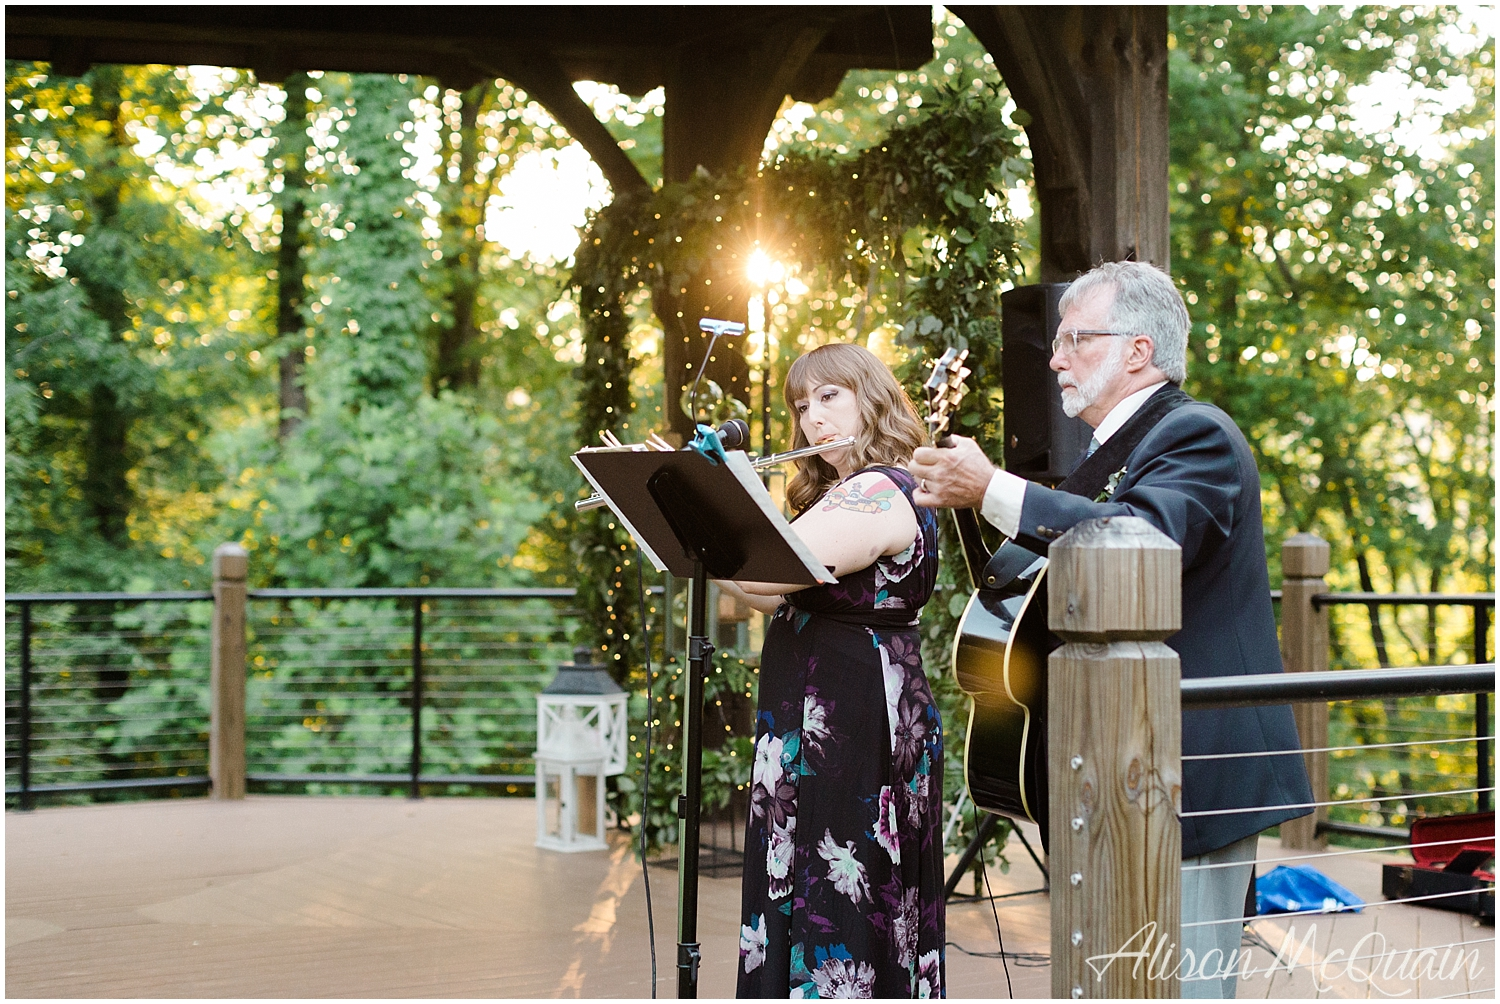 2018-05-23_0033LandC_wedding_dancingbearlodge_townsend_tn_amp.jpg